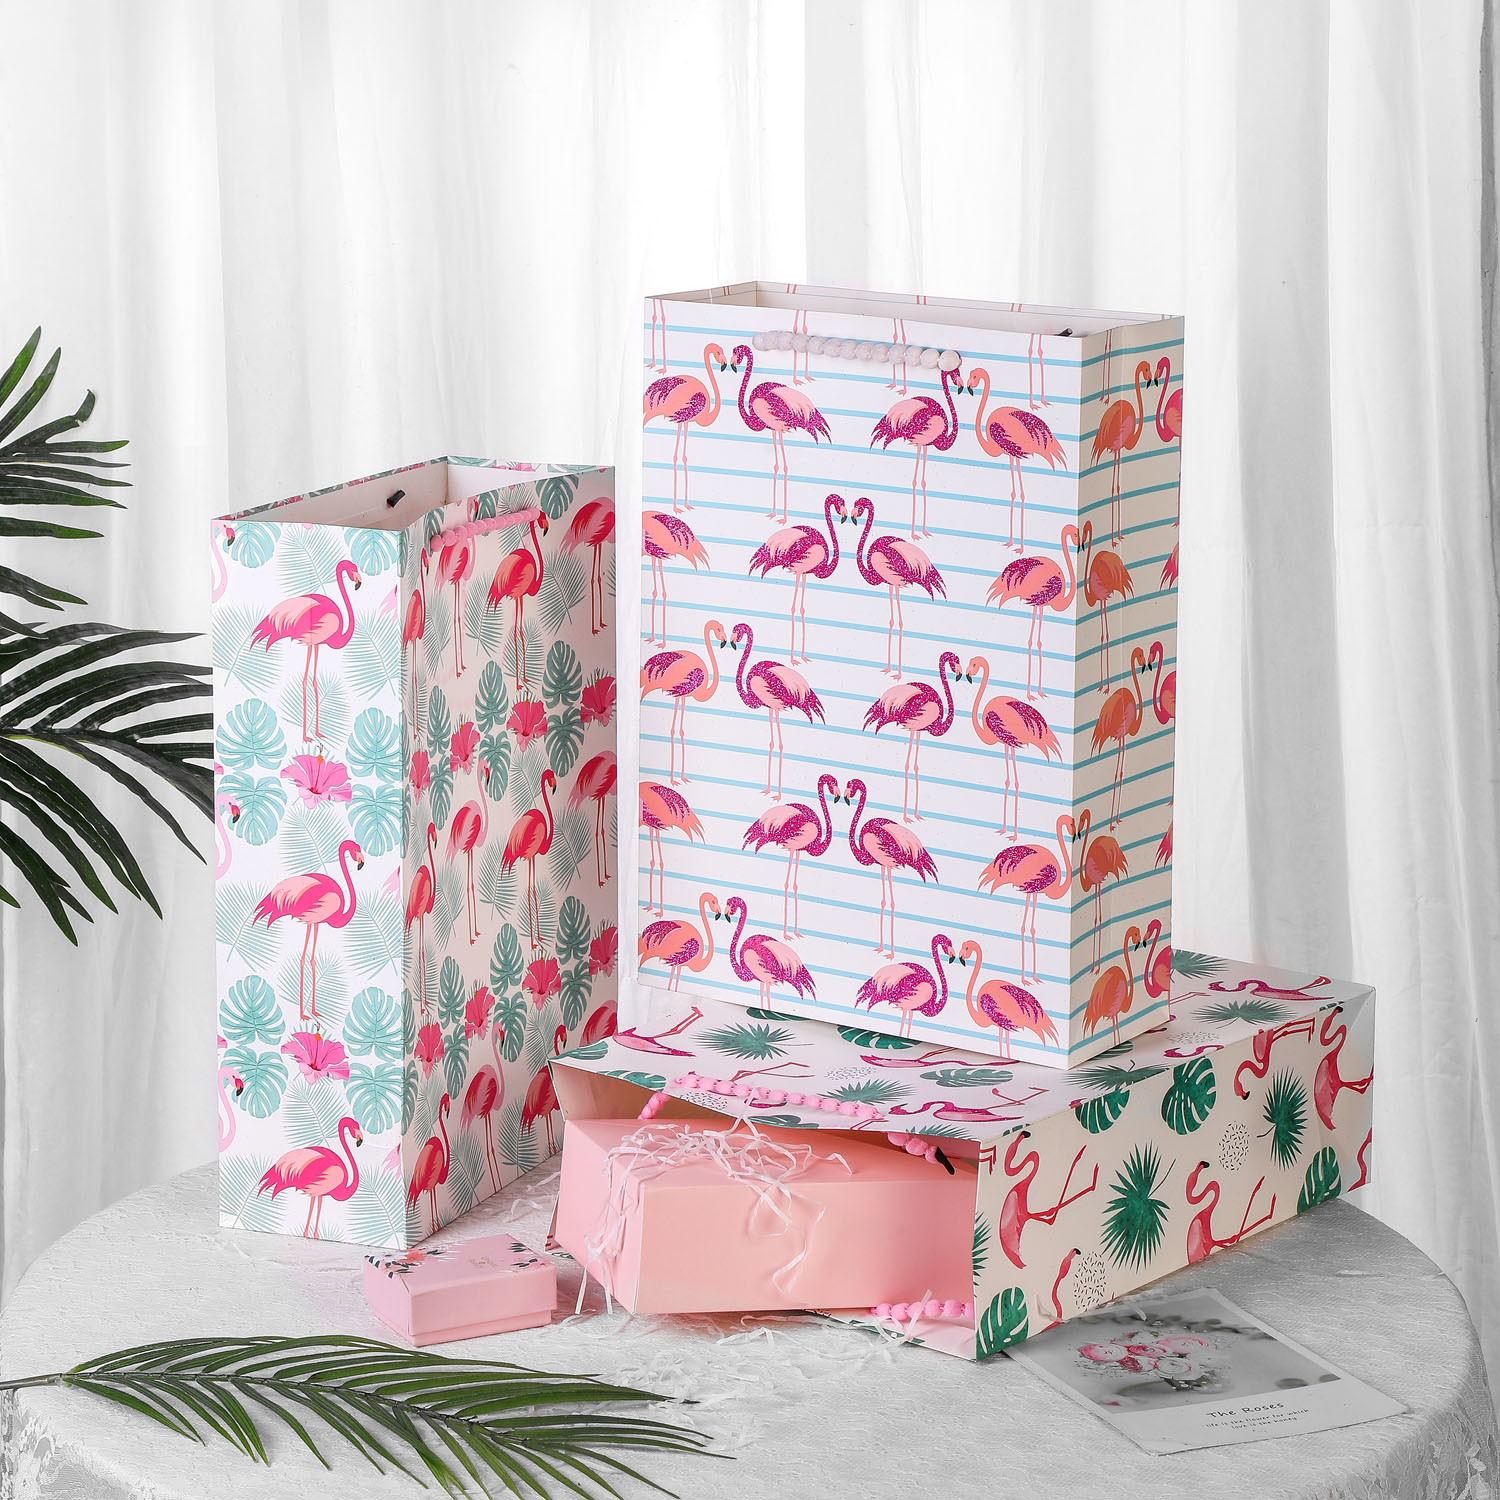 Daily Shopping Paper Bag with Pink Glittering Flamingo Design